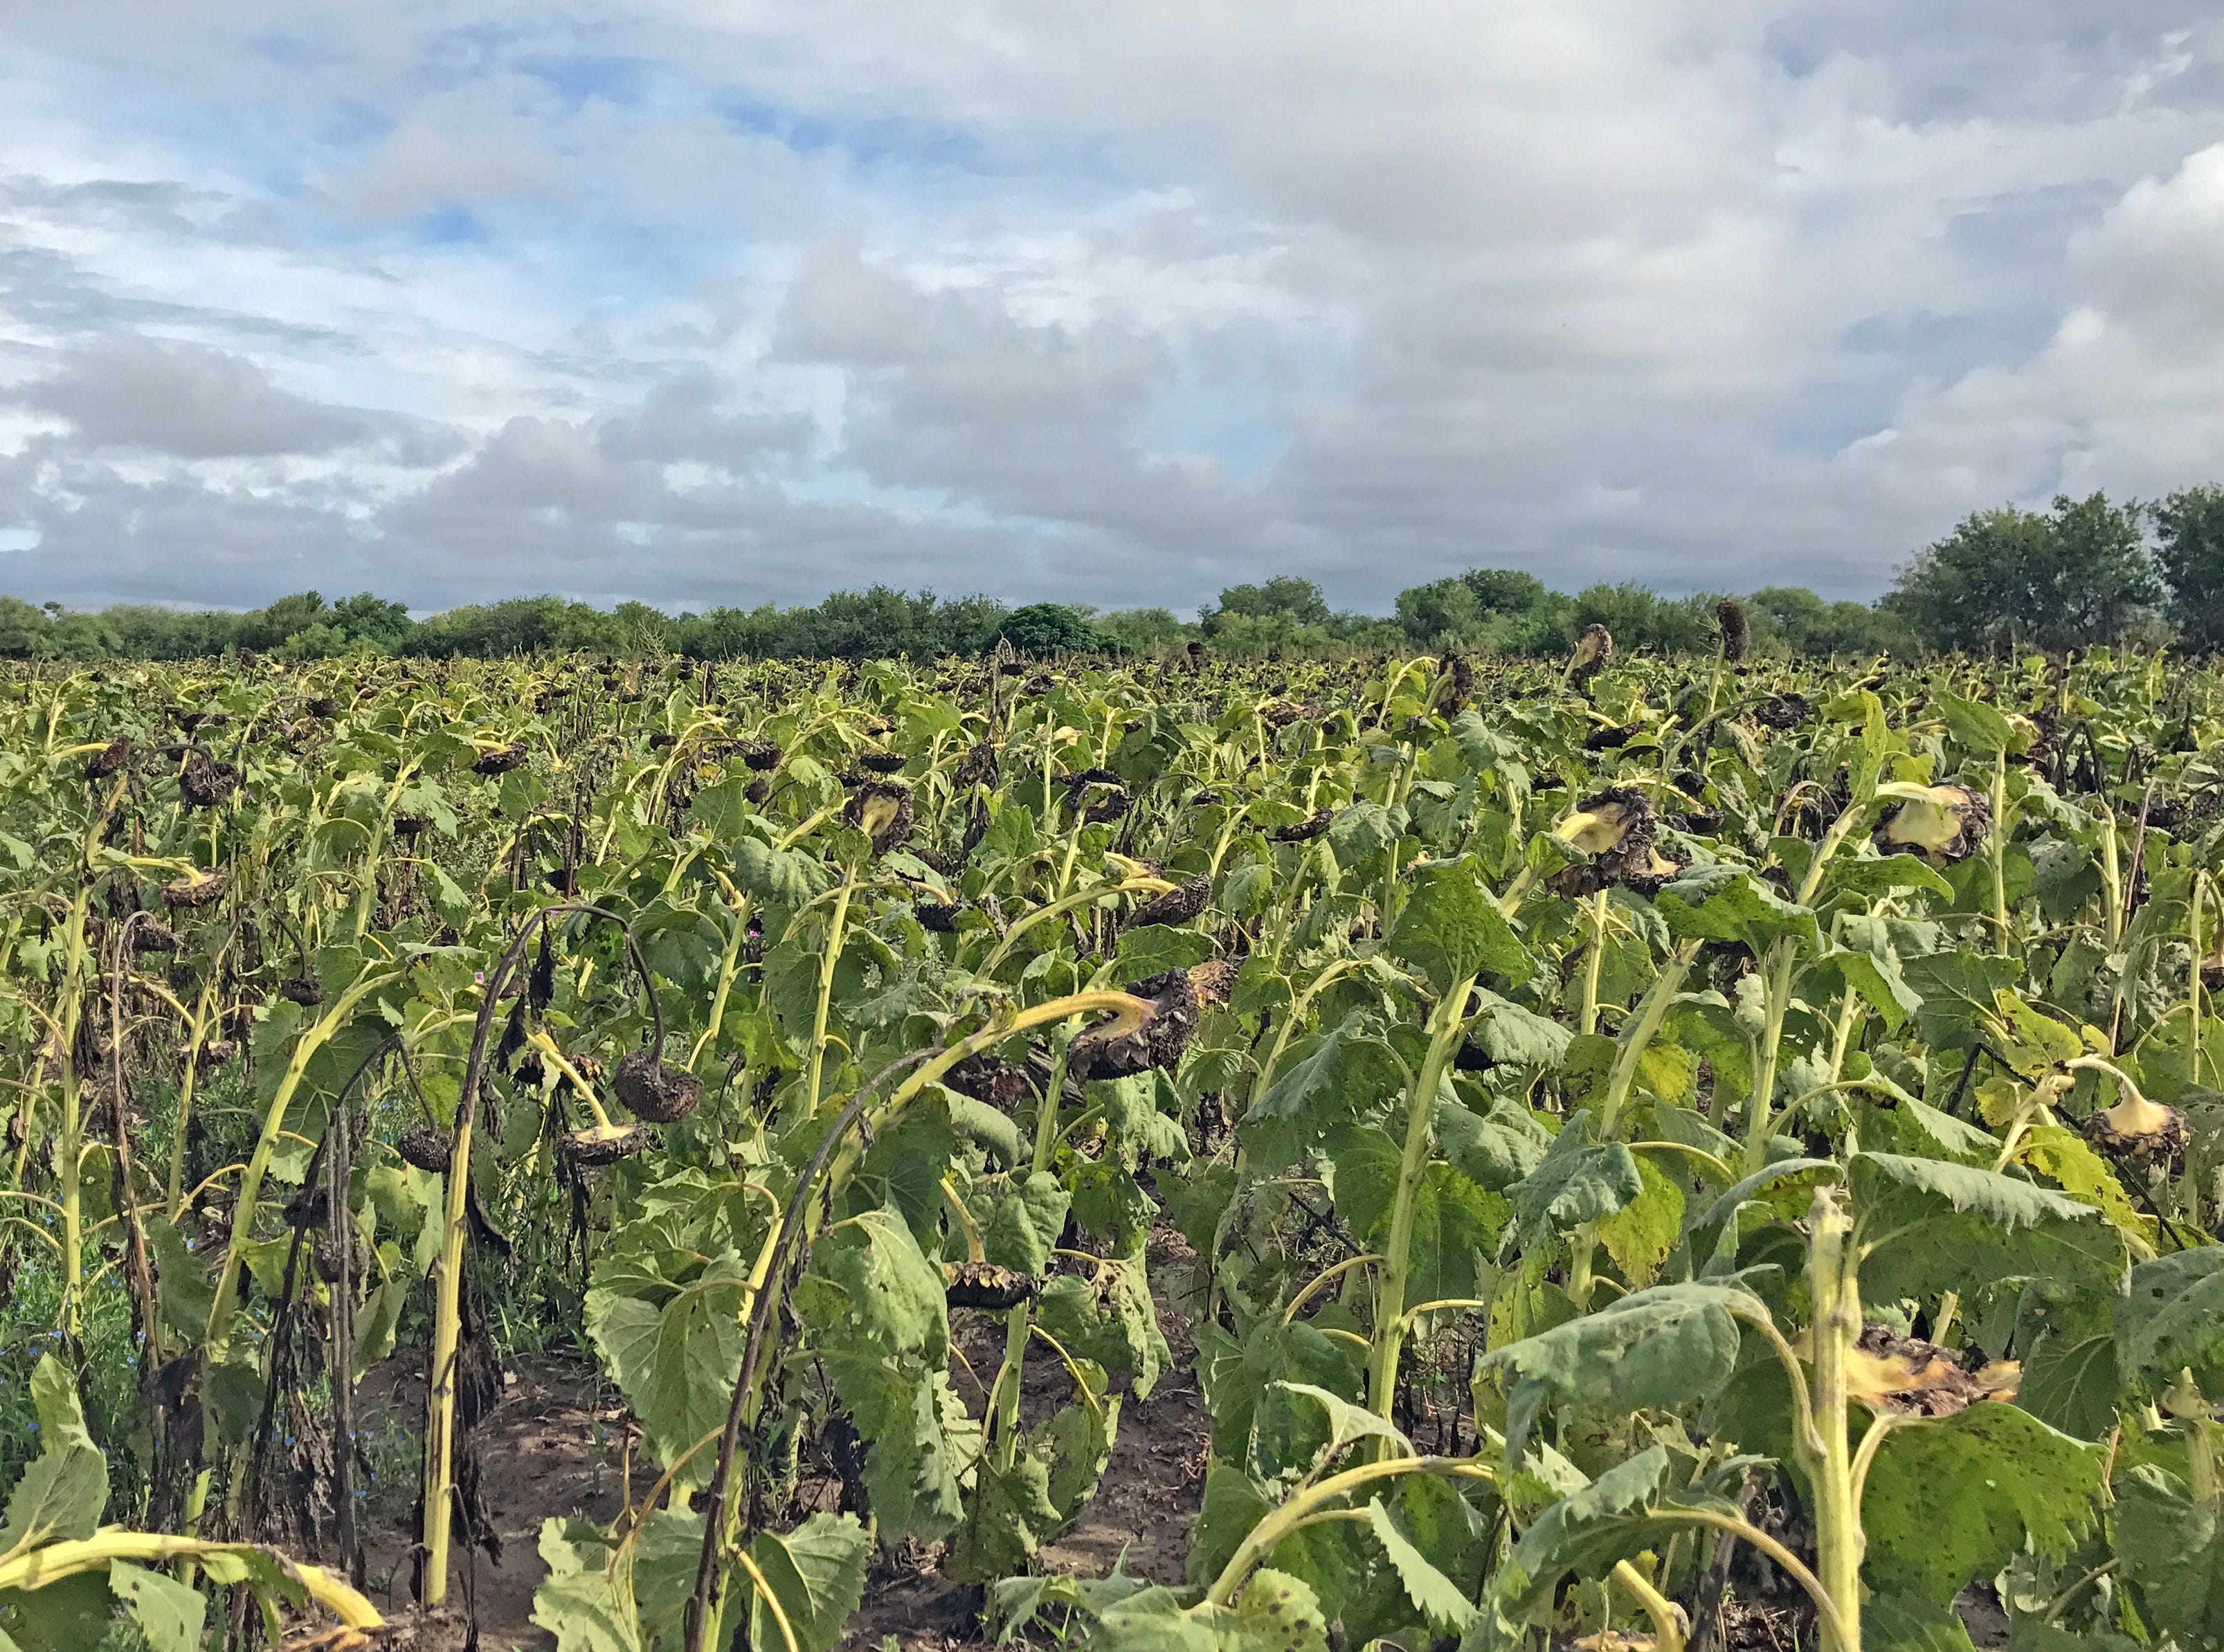 All varieties of dove seem to be attracted to these Rio Grande Valley sunflower fields.